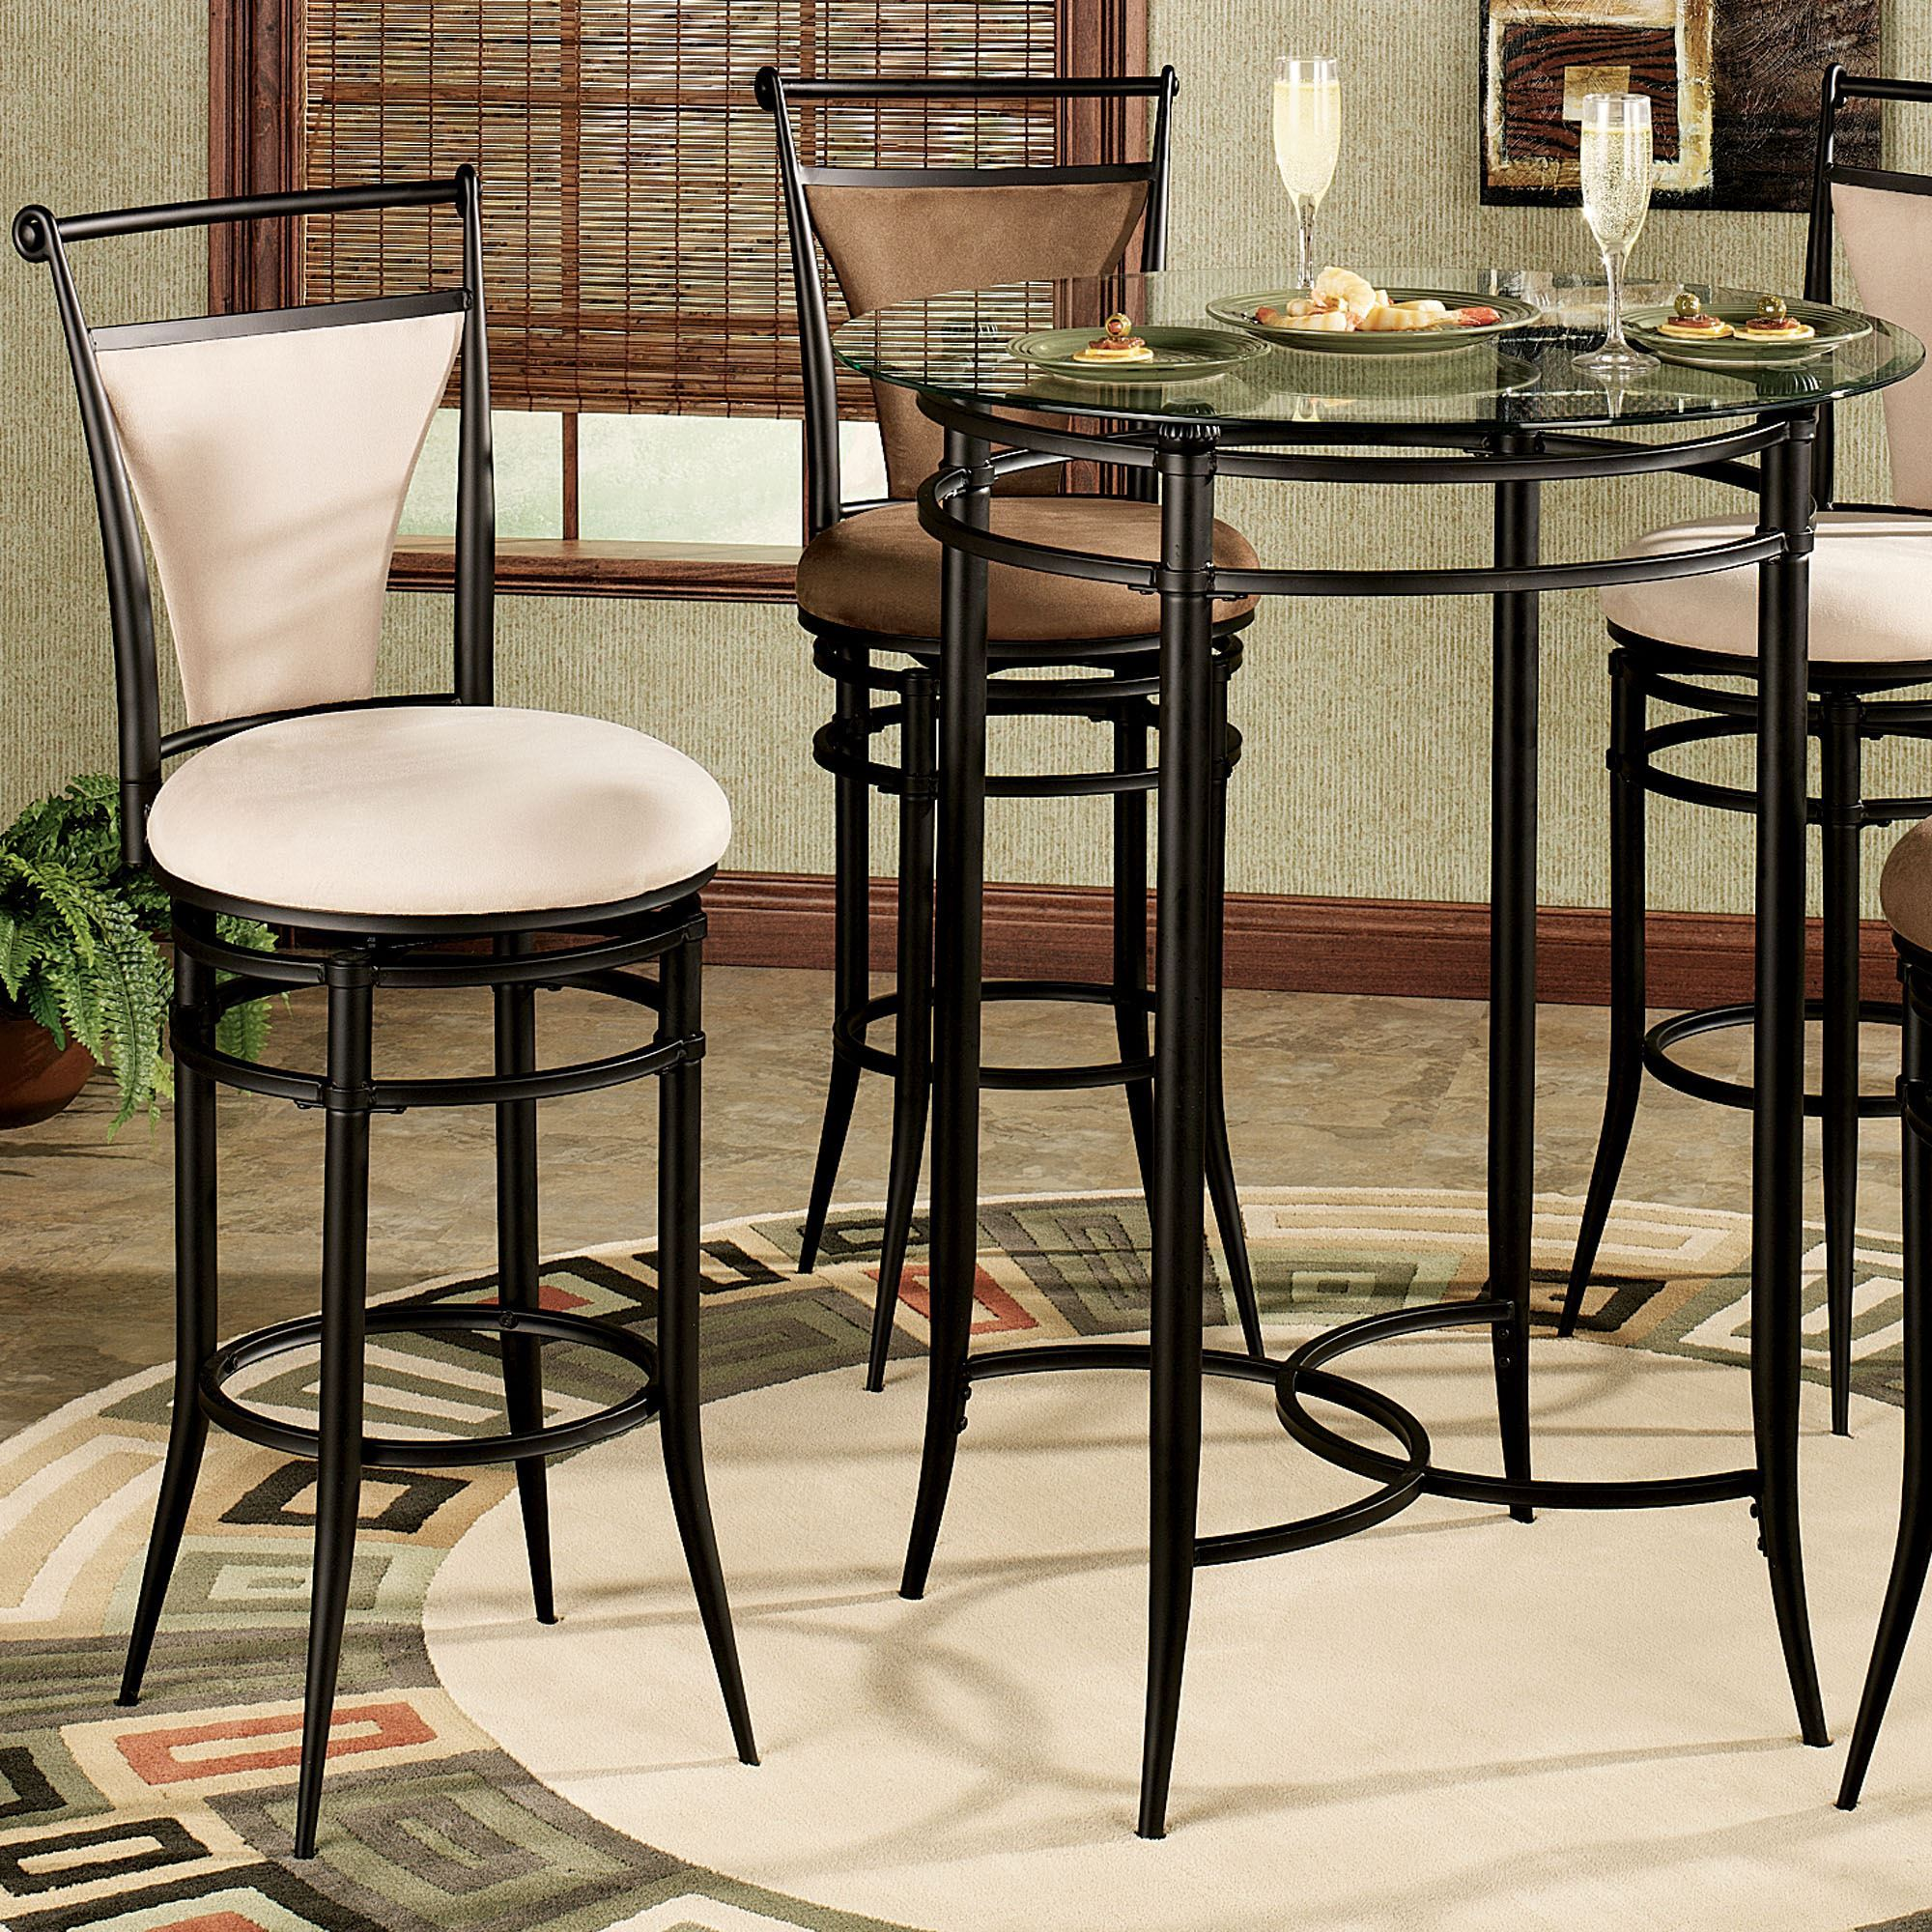 Unique Pub Table and Chairs Set